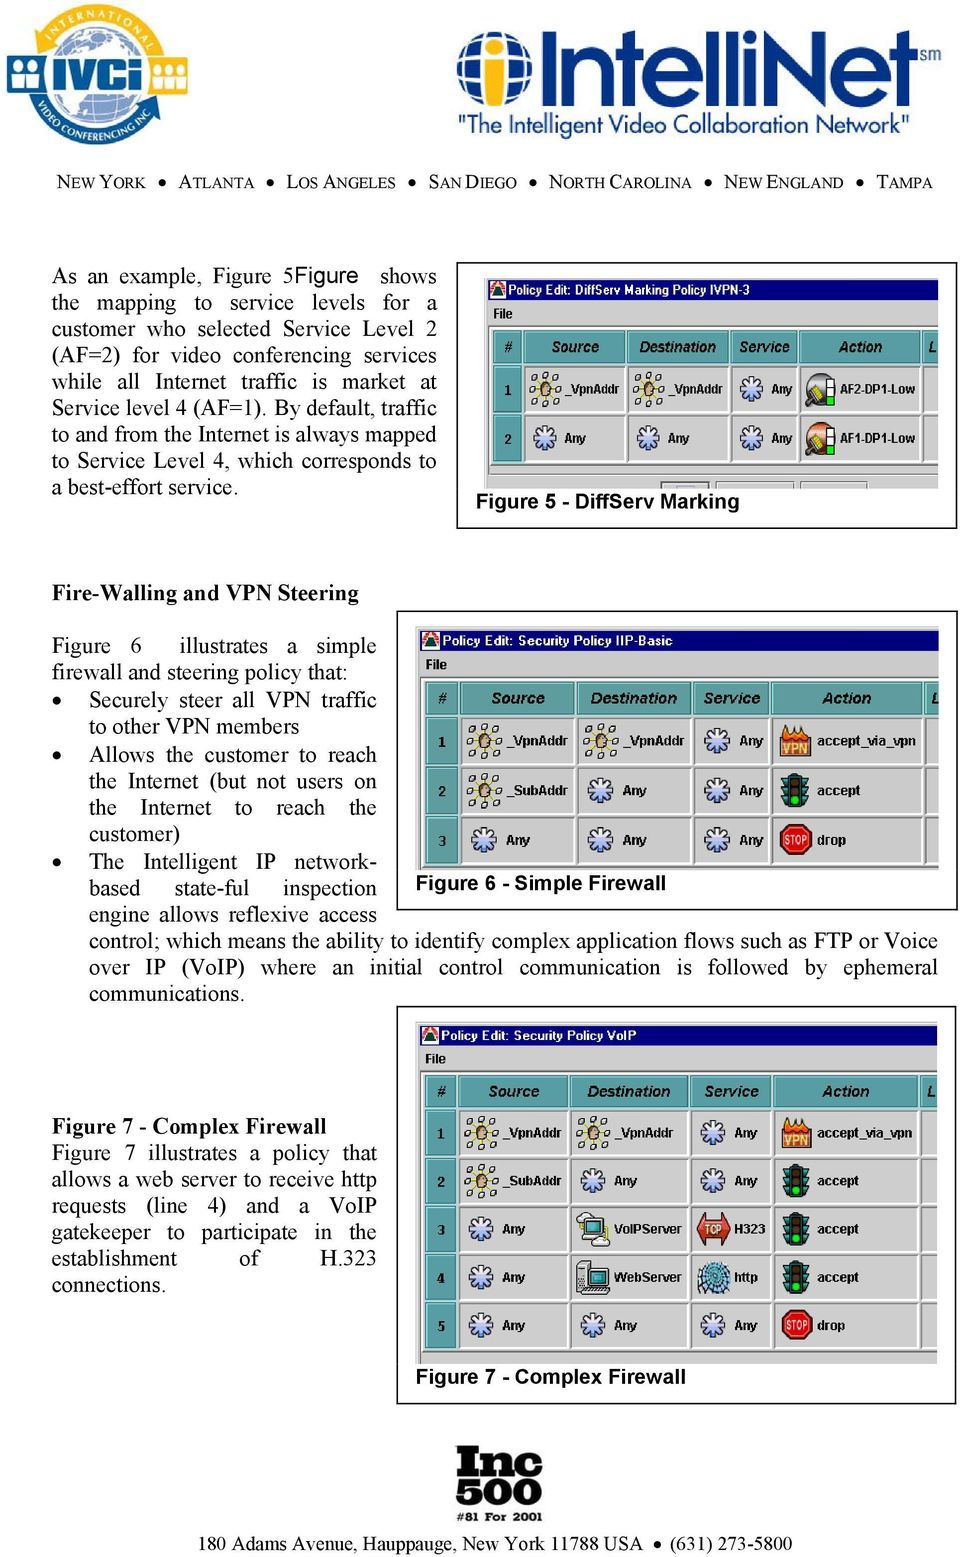 Figure 5 - DiffServ Marking Fire-Walling and VPN Steering Figure 6 illustrates a simple firewall and steering policy that: Securely steer all VPN traffic to other VPN members Allows the customer to